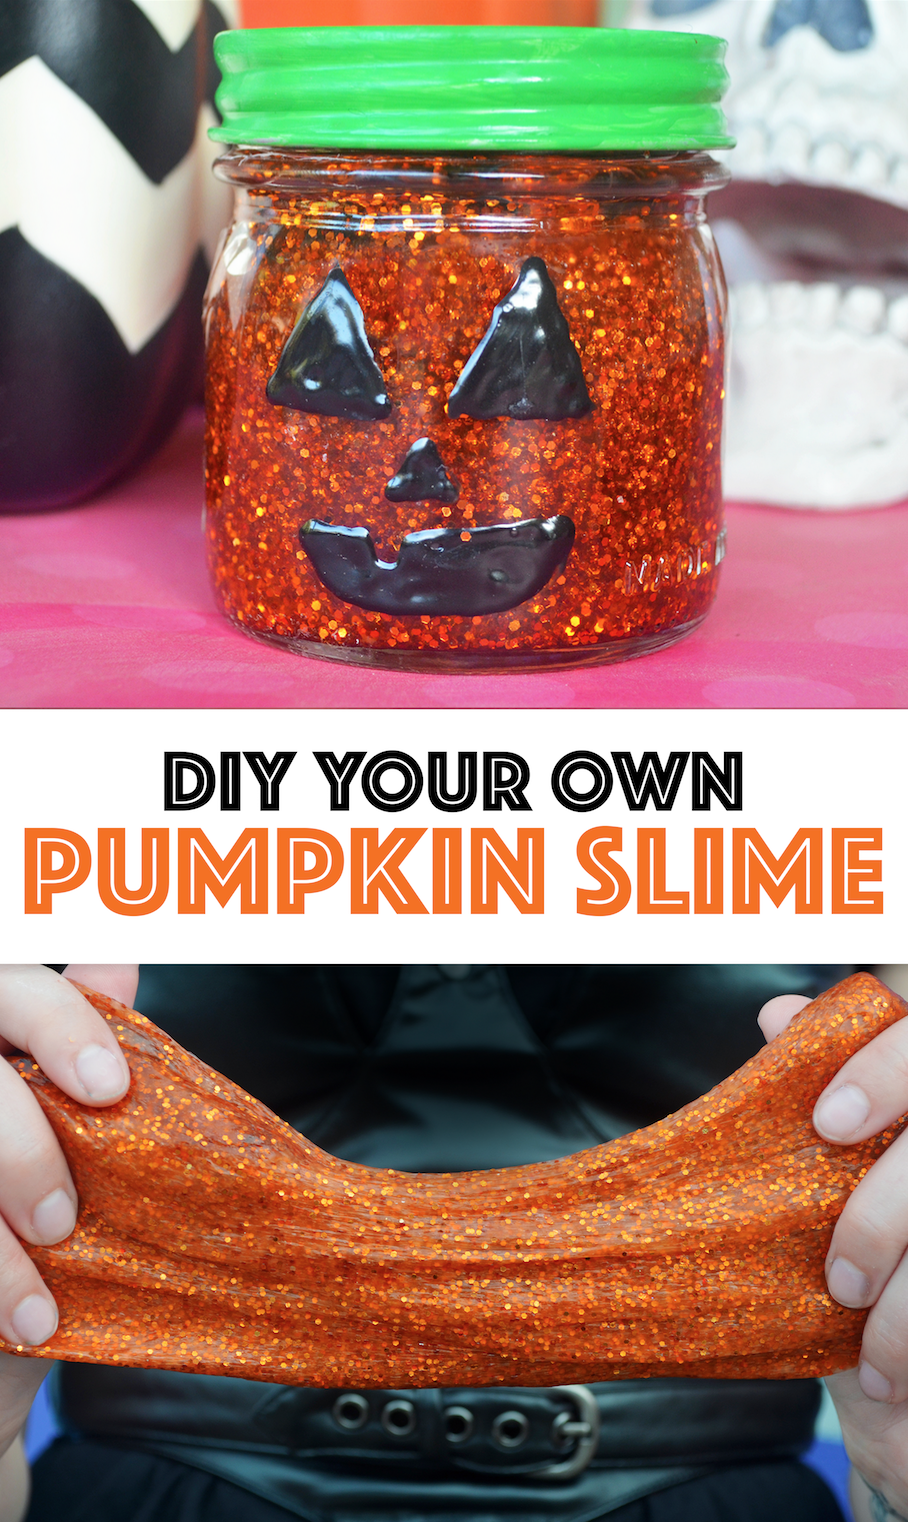 diy-your-own-pumpkin-slme